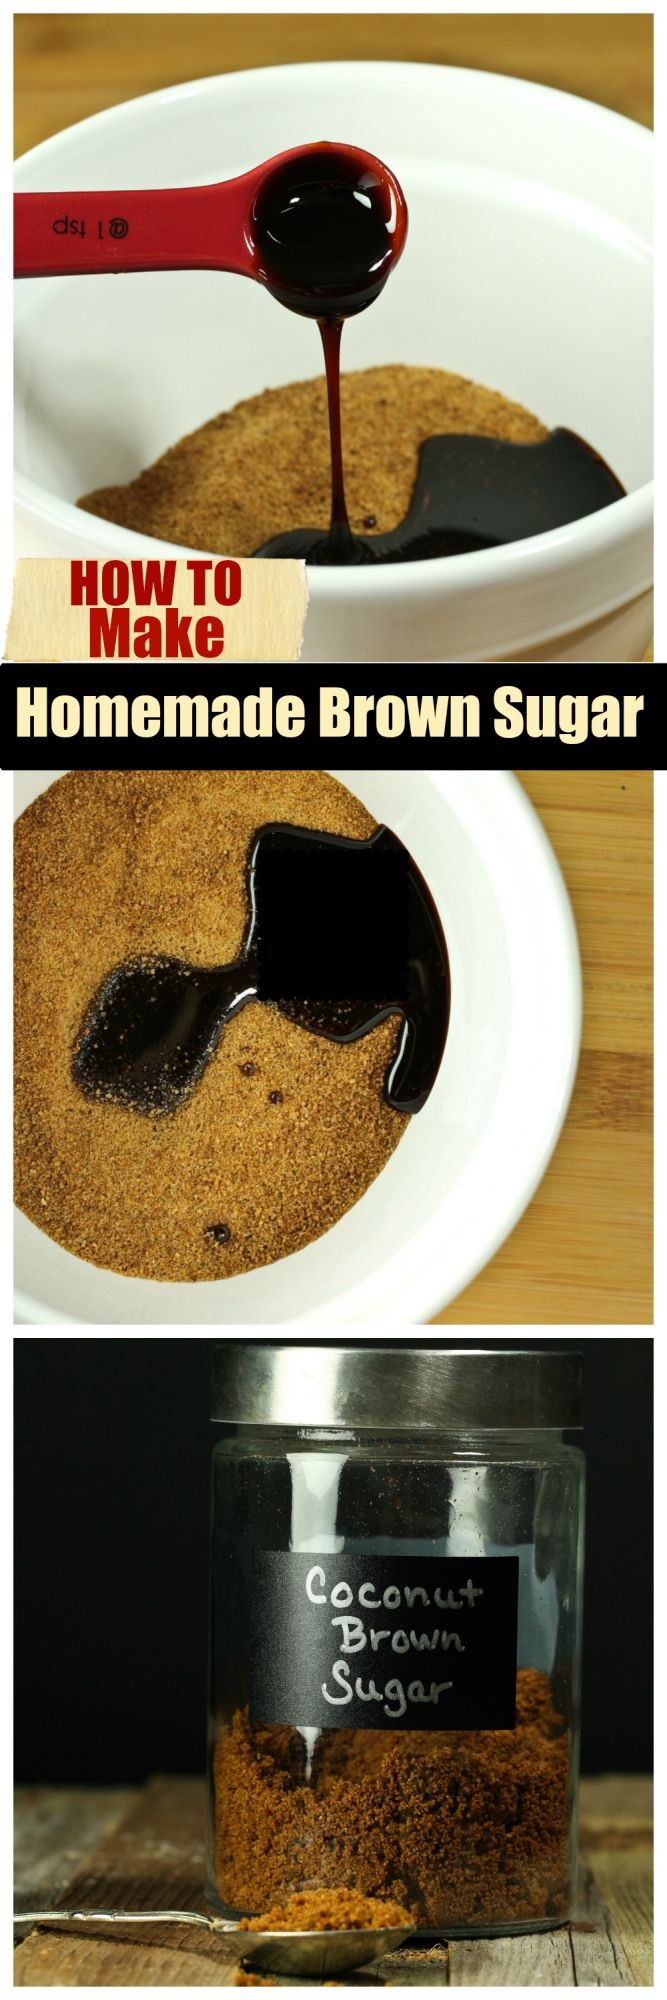 How To Make Homemade Brown Sugar (3 Flavors)  in just about a minute and 2 basic ingredients!